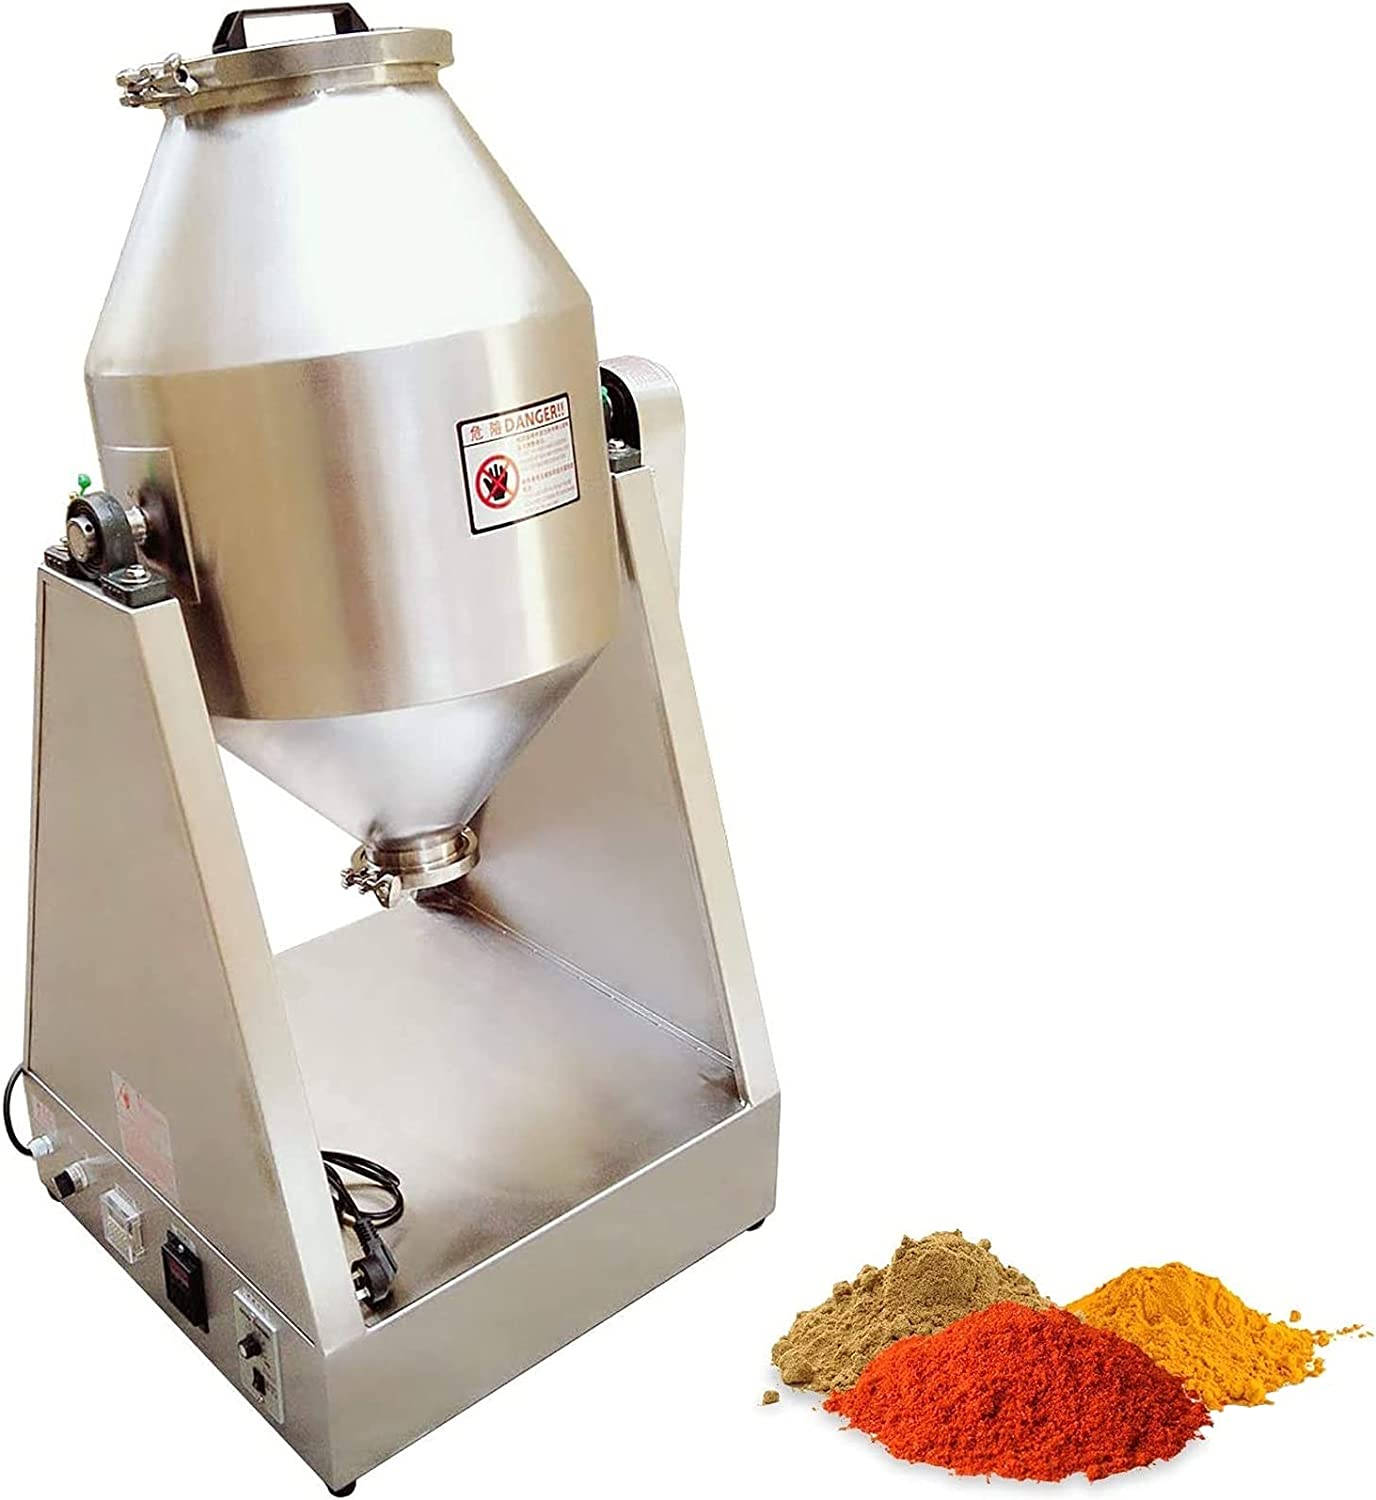 HSOSK 110V 220V Some reservation Mixers Selling rankings Powder Dry Mixing Mixer machineLab